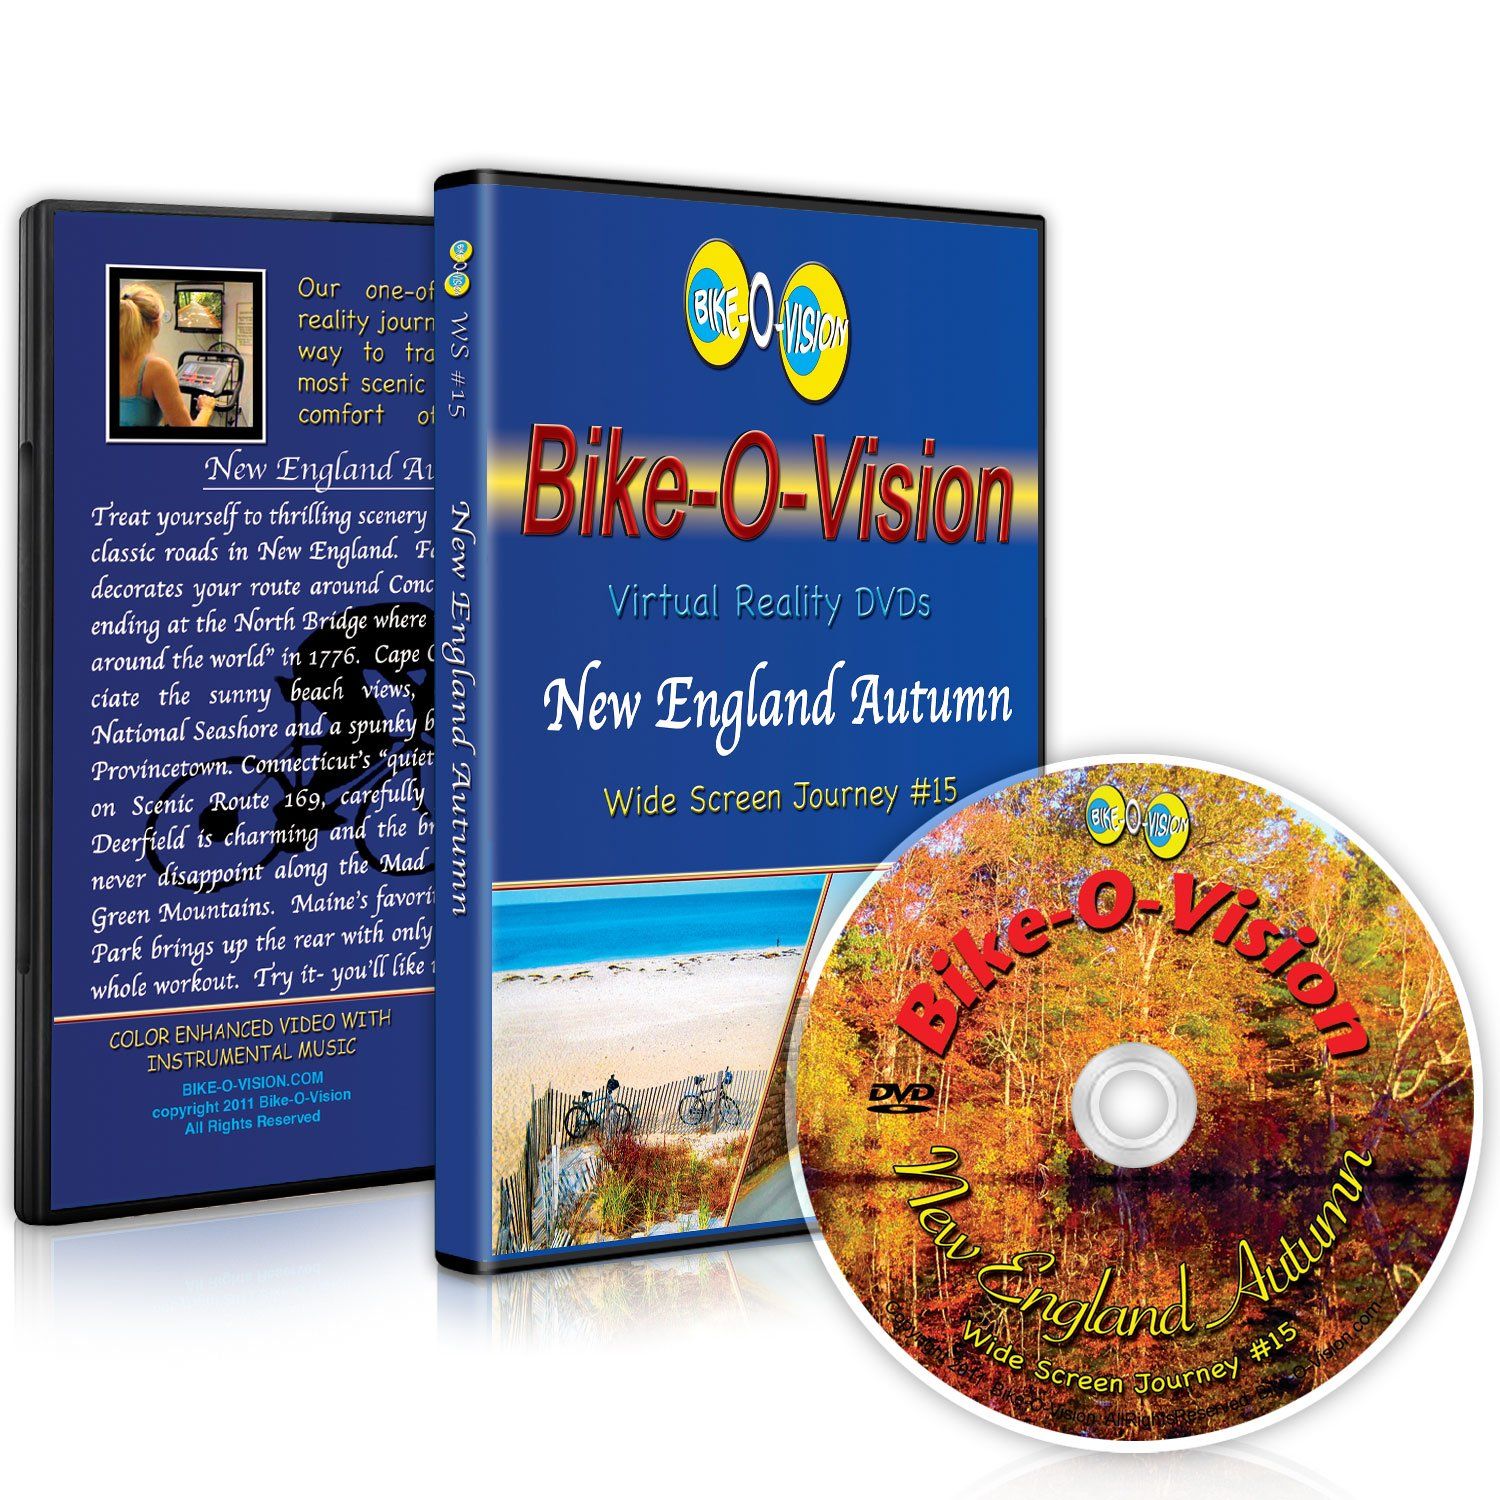 Bike-O-Vision - Virtual Cycling Adventure - New England Autumn - Perfect for Indoor Cycling and Treadmill Workouts - Cardio Fitness Scenery Video (Widescreen DVD #15)